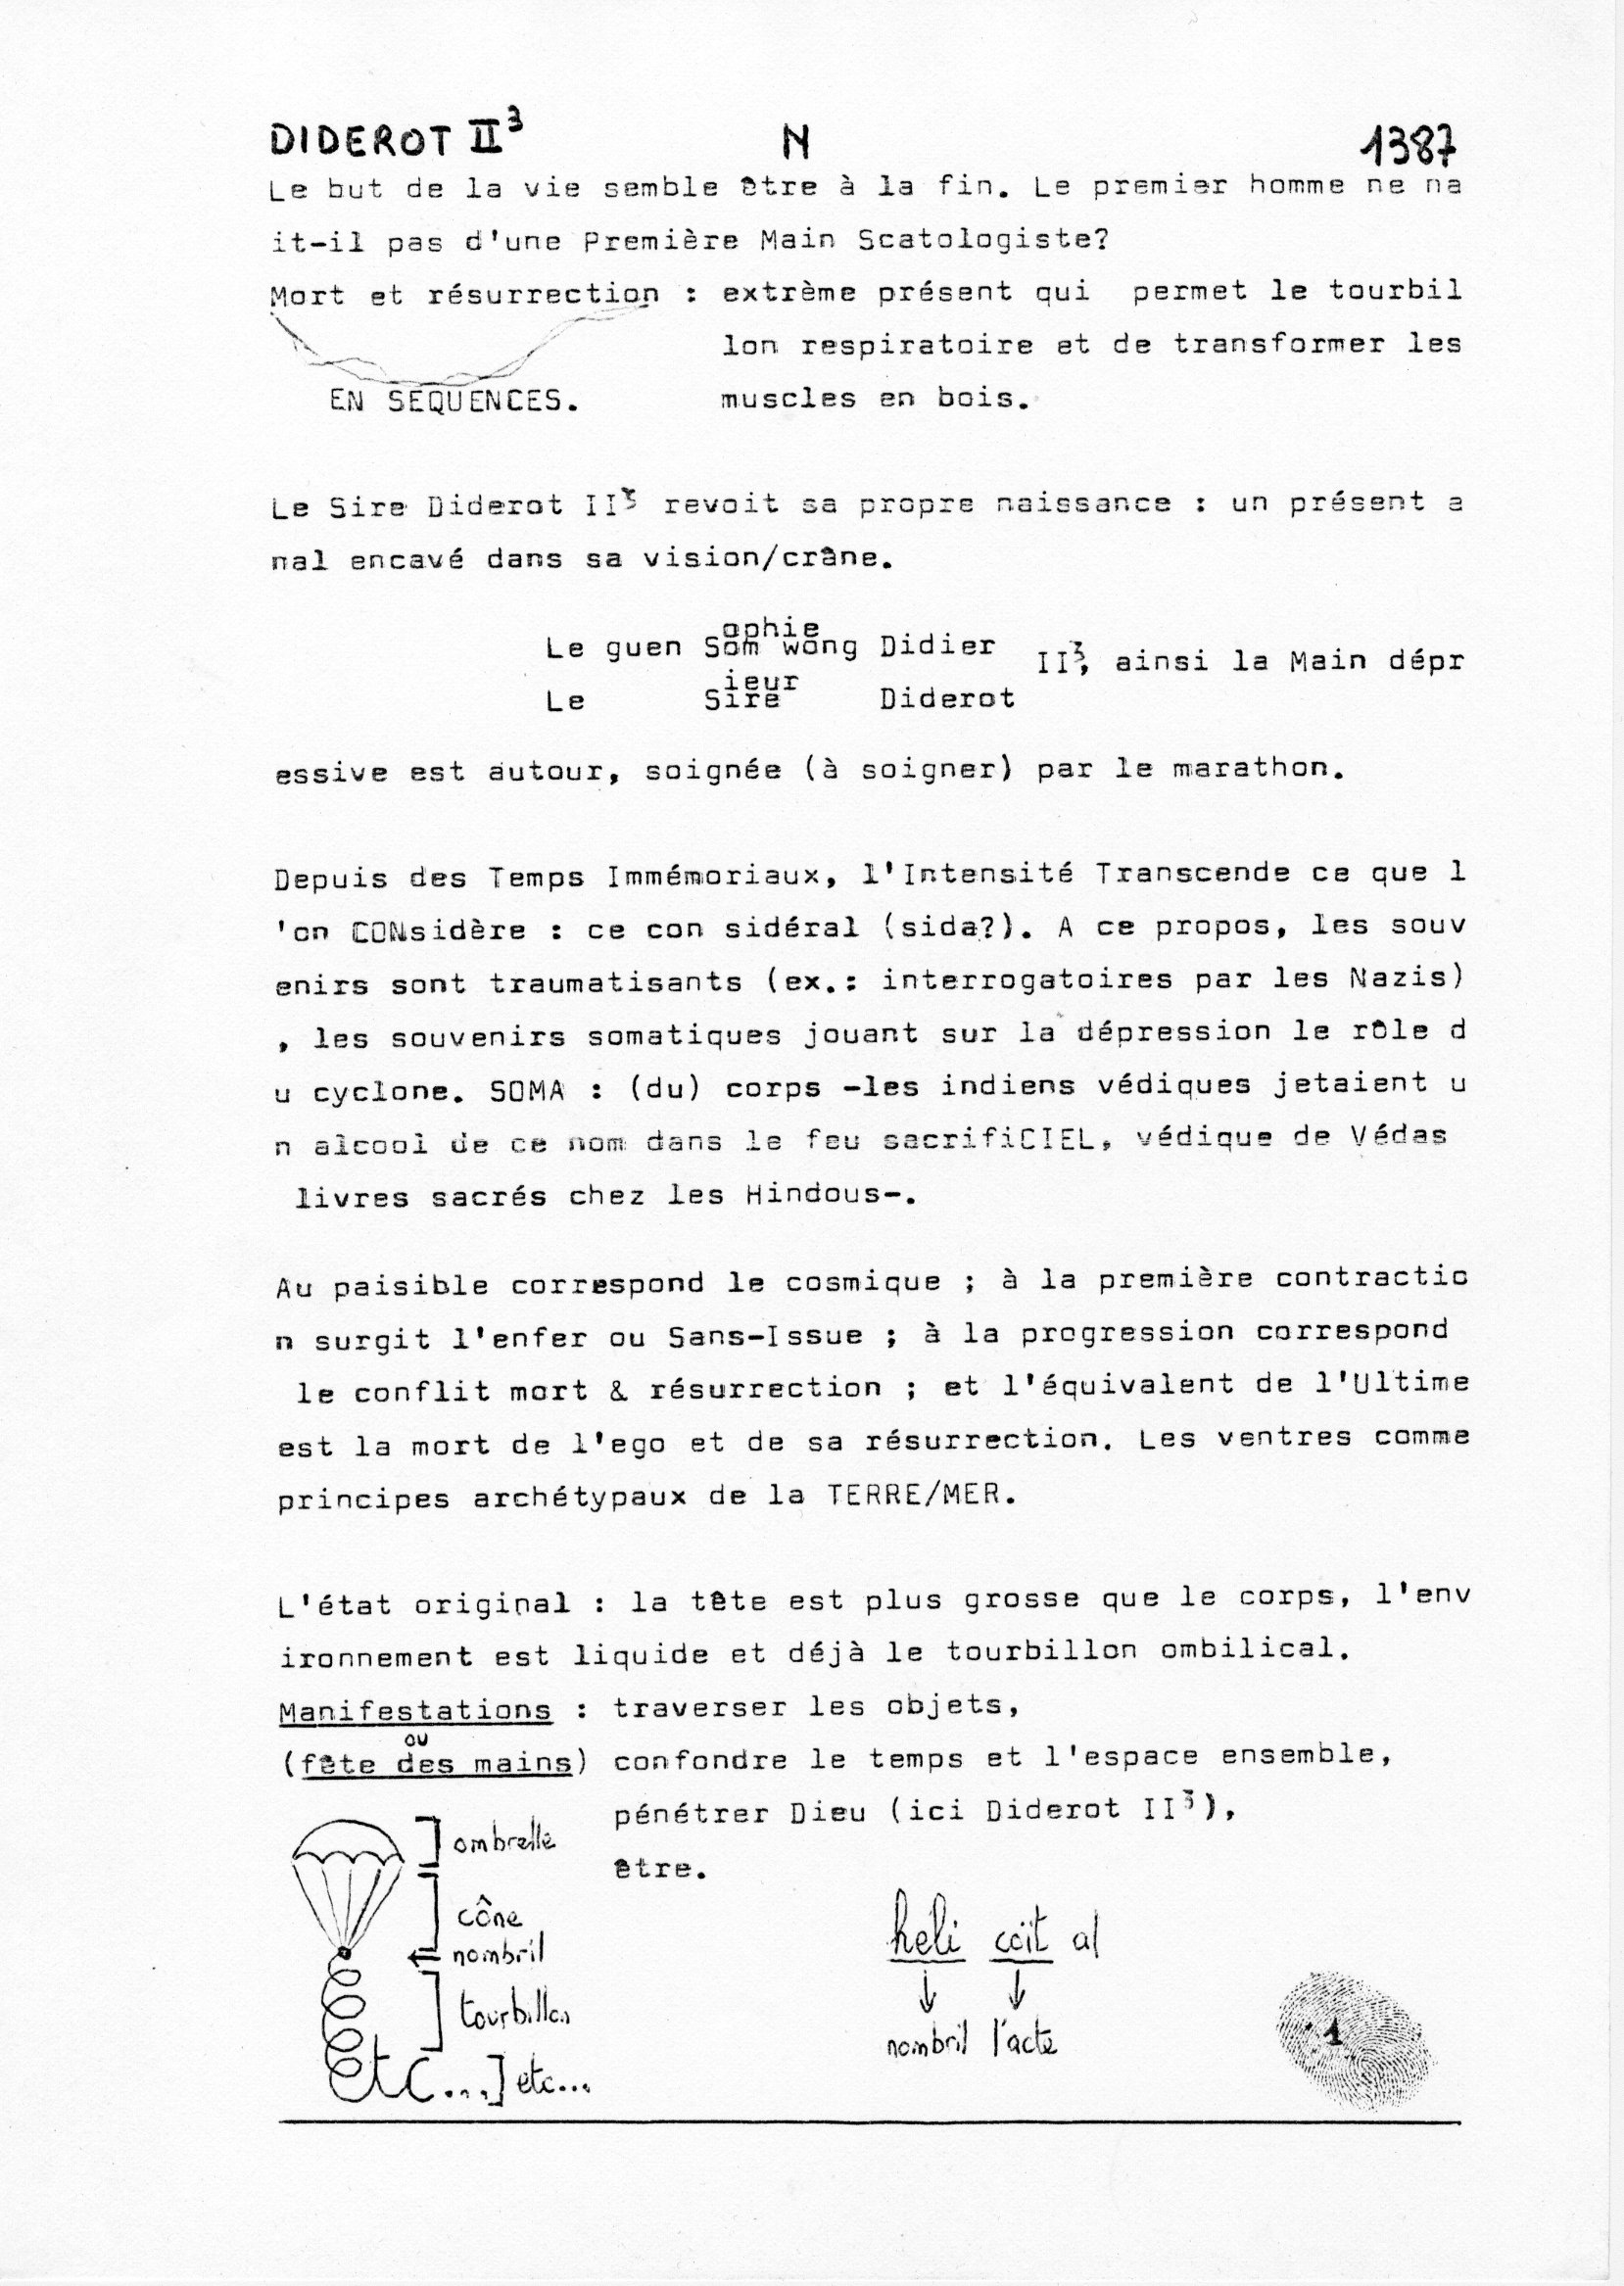 page 1387 Diderot II p3 N